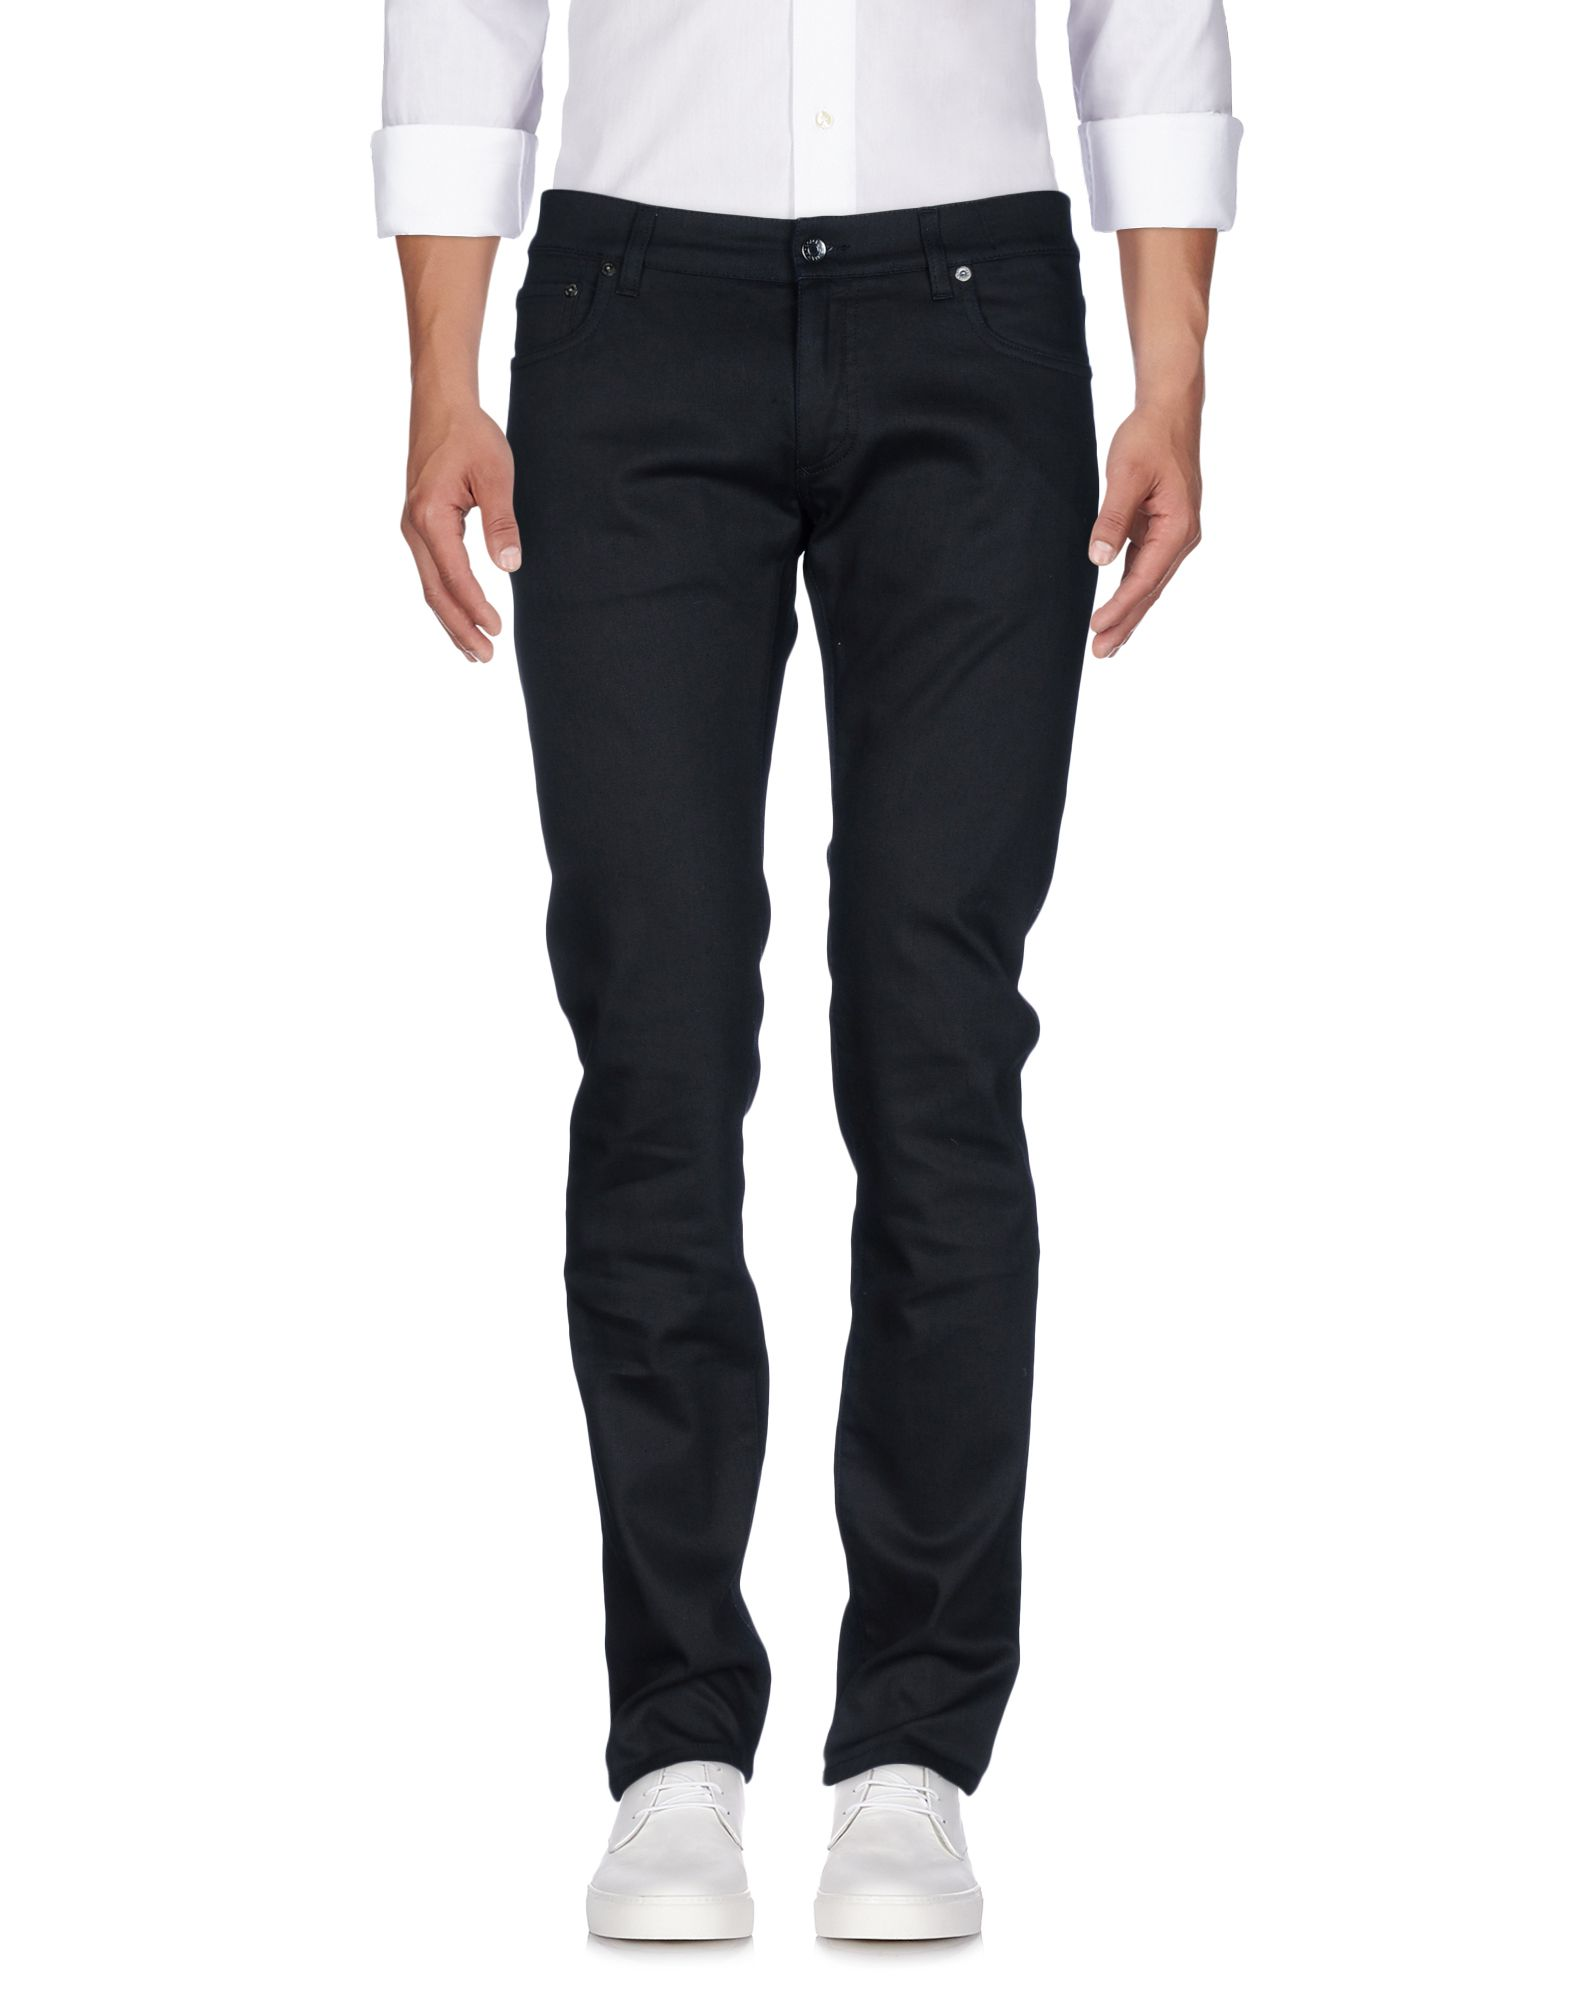 DOLCE & GABBANA Denim pants - Item 42632857